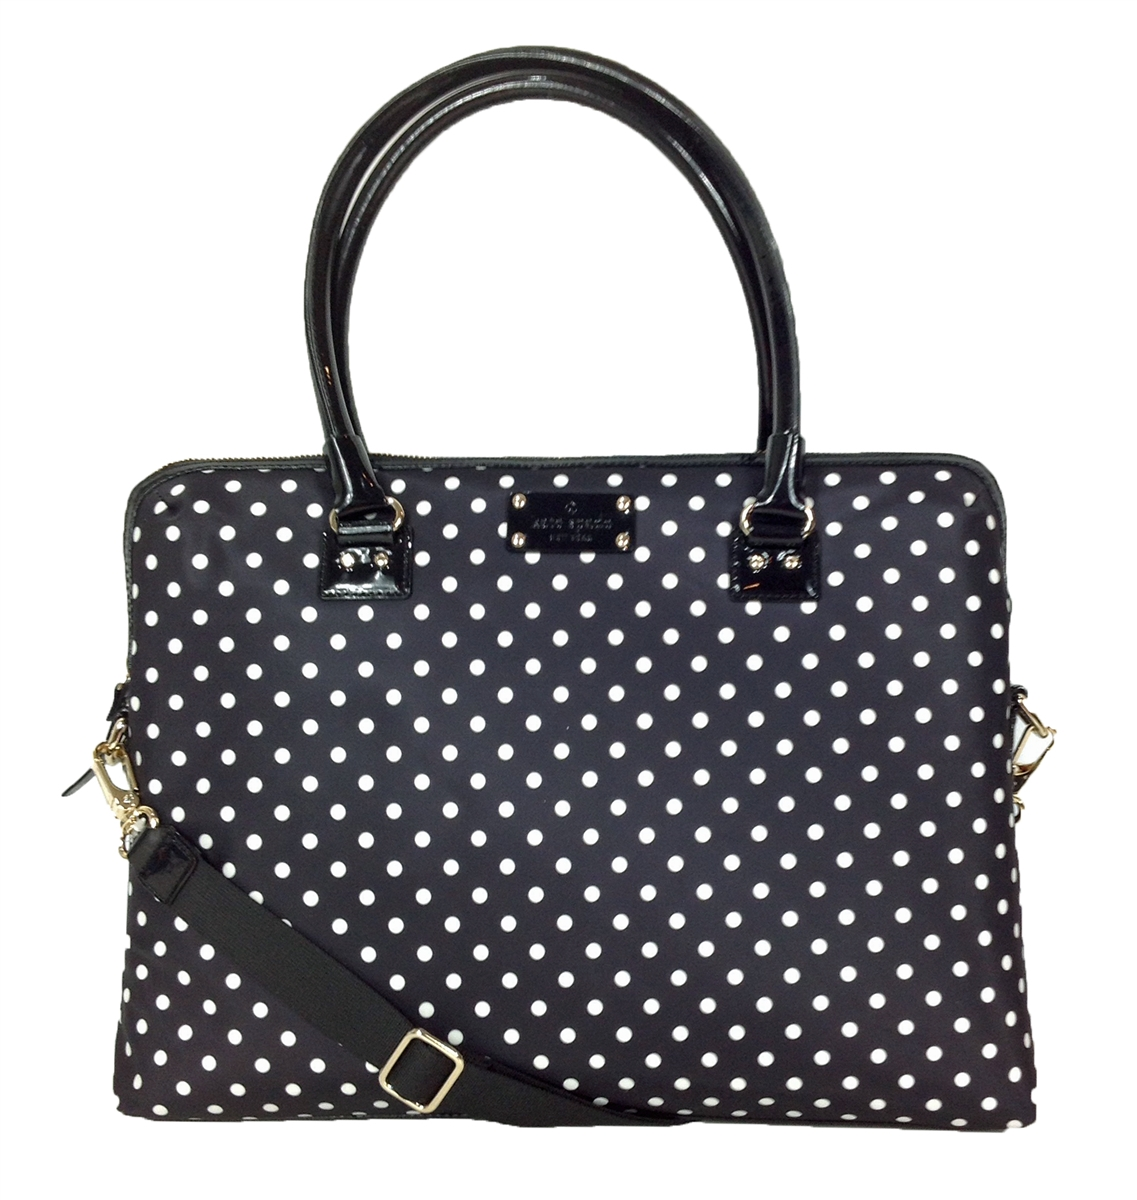 Kate spade new york spot nylon calista laptop bag black polka dot junglespirit Gallery